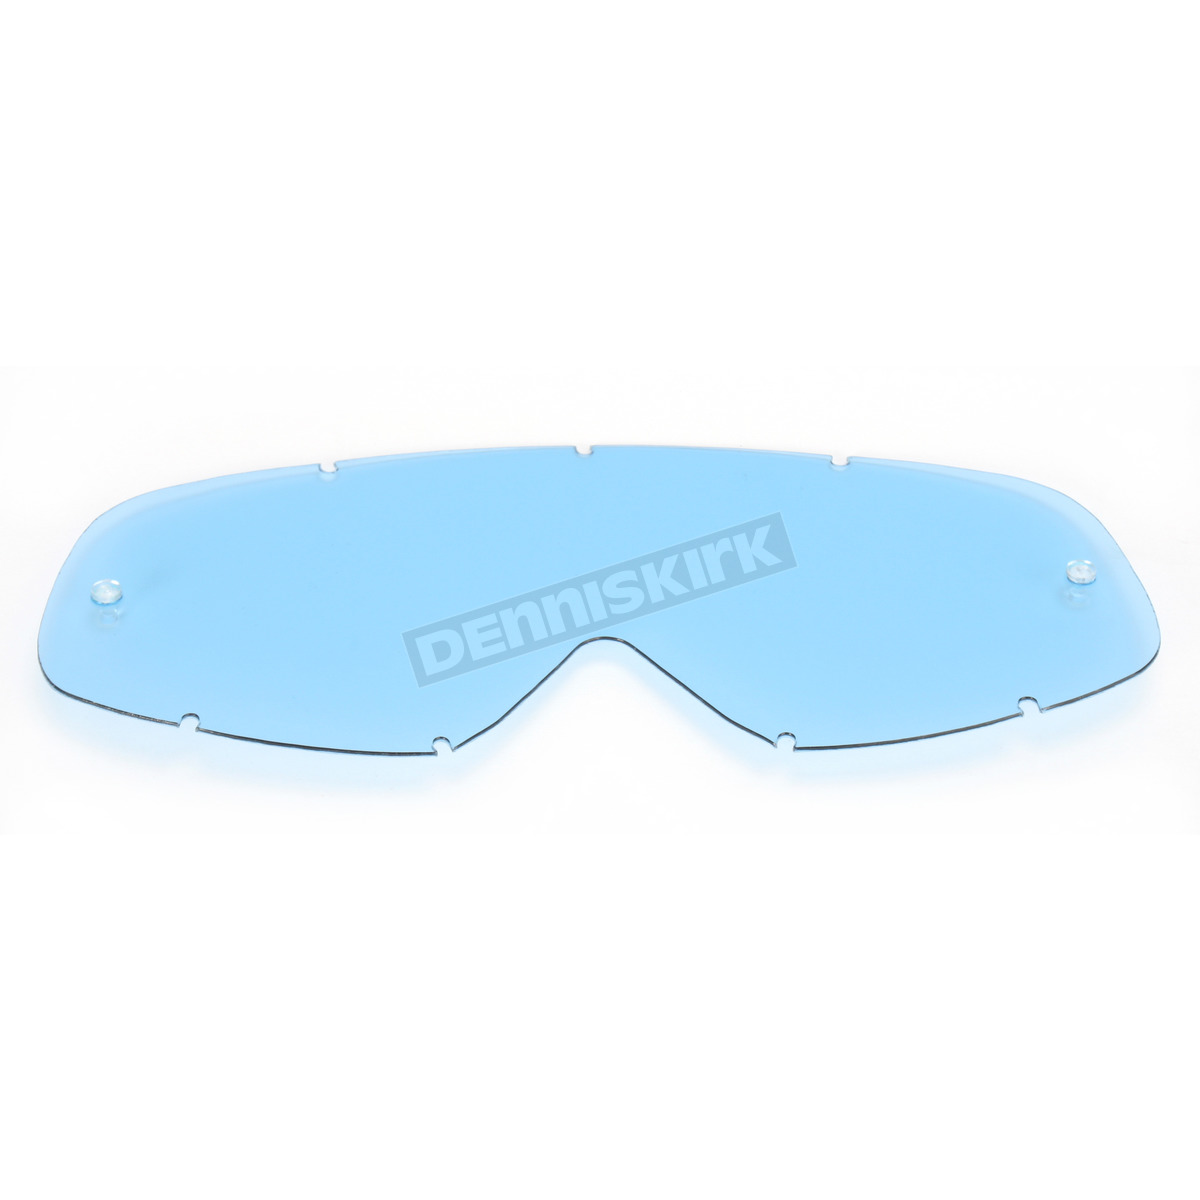 oakley replacement goggle lenses j575  oakley replacement goggle lenses